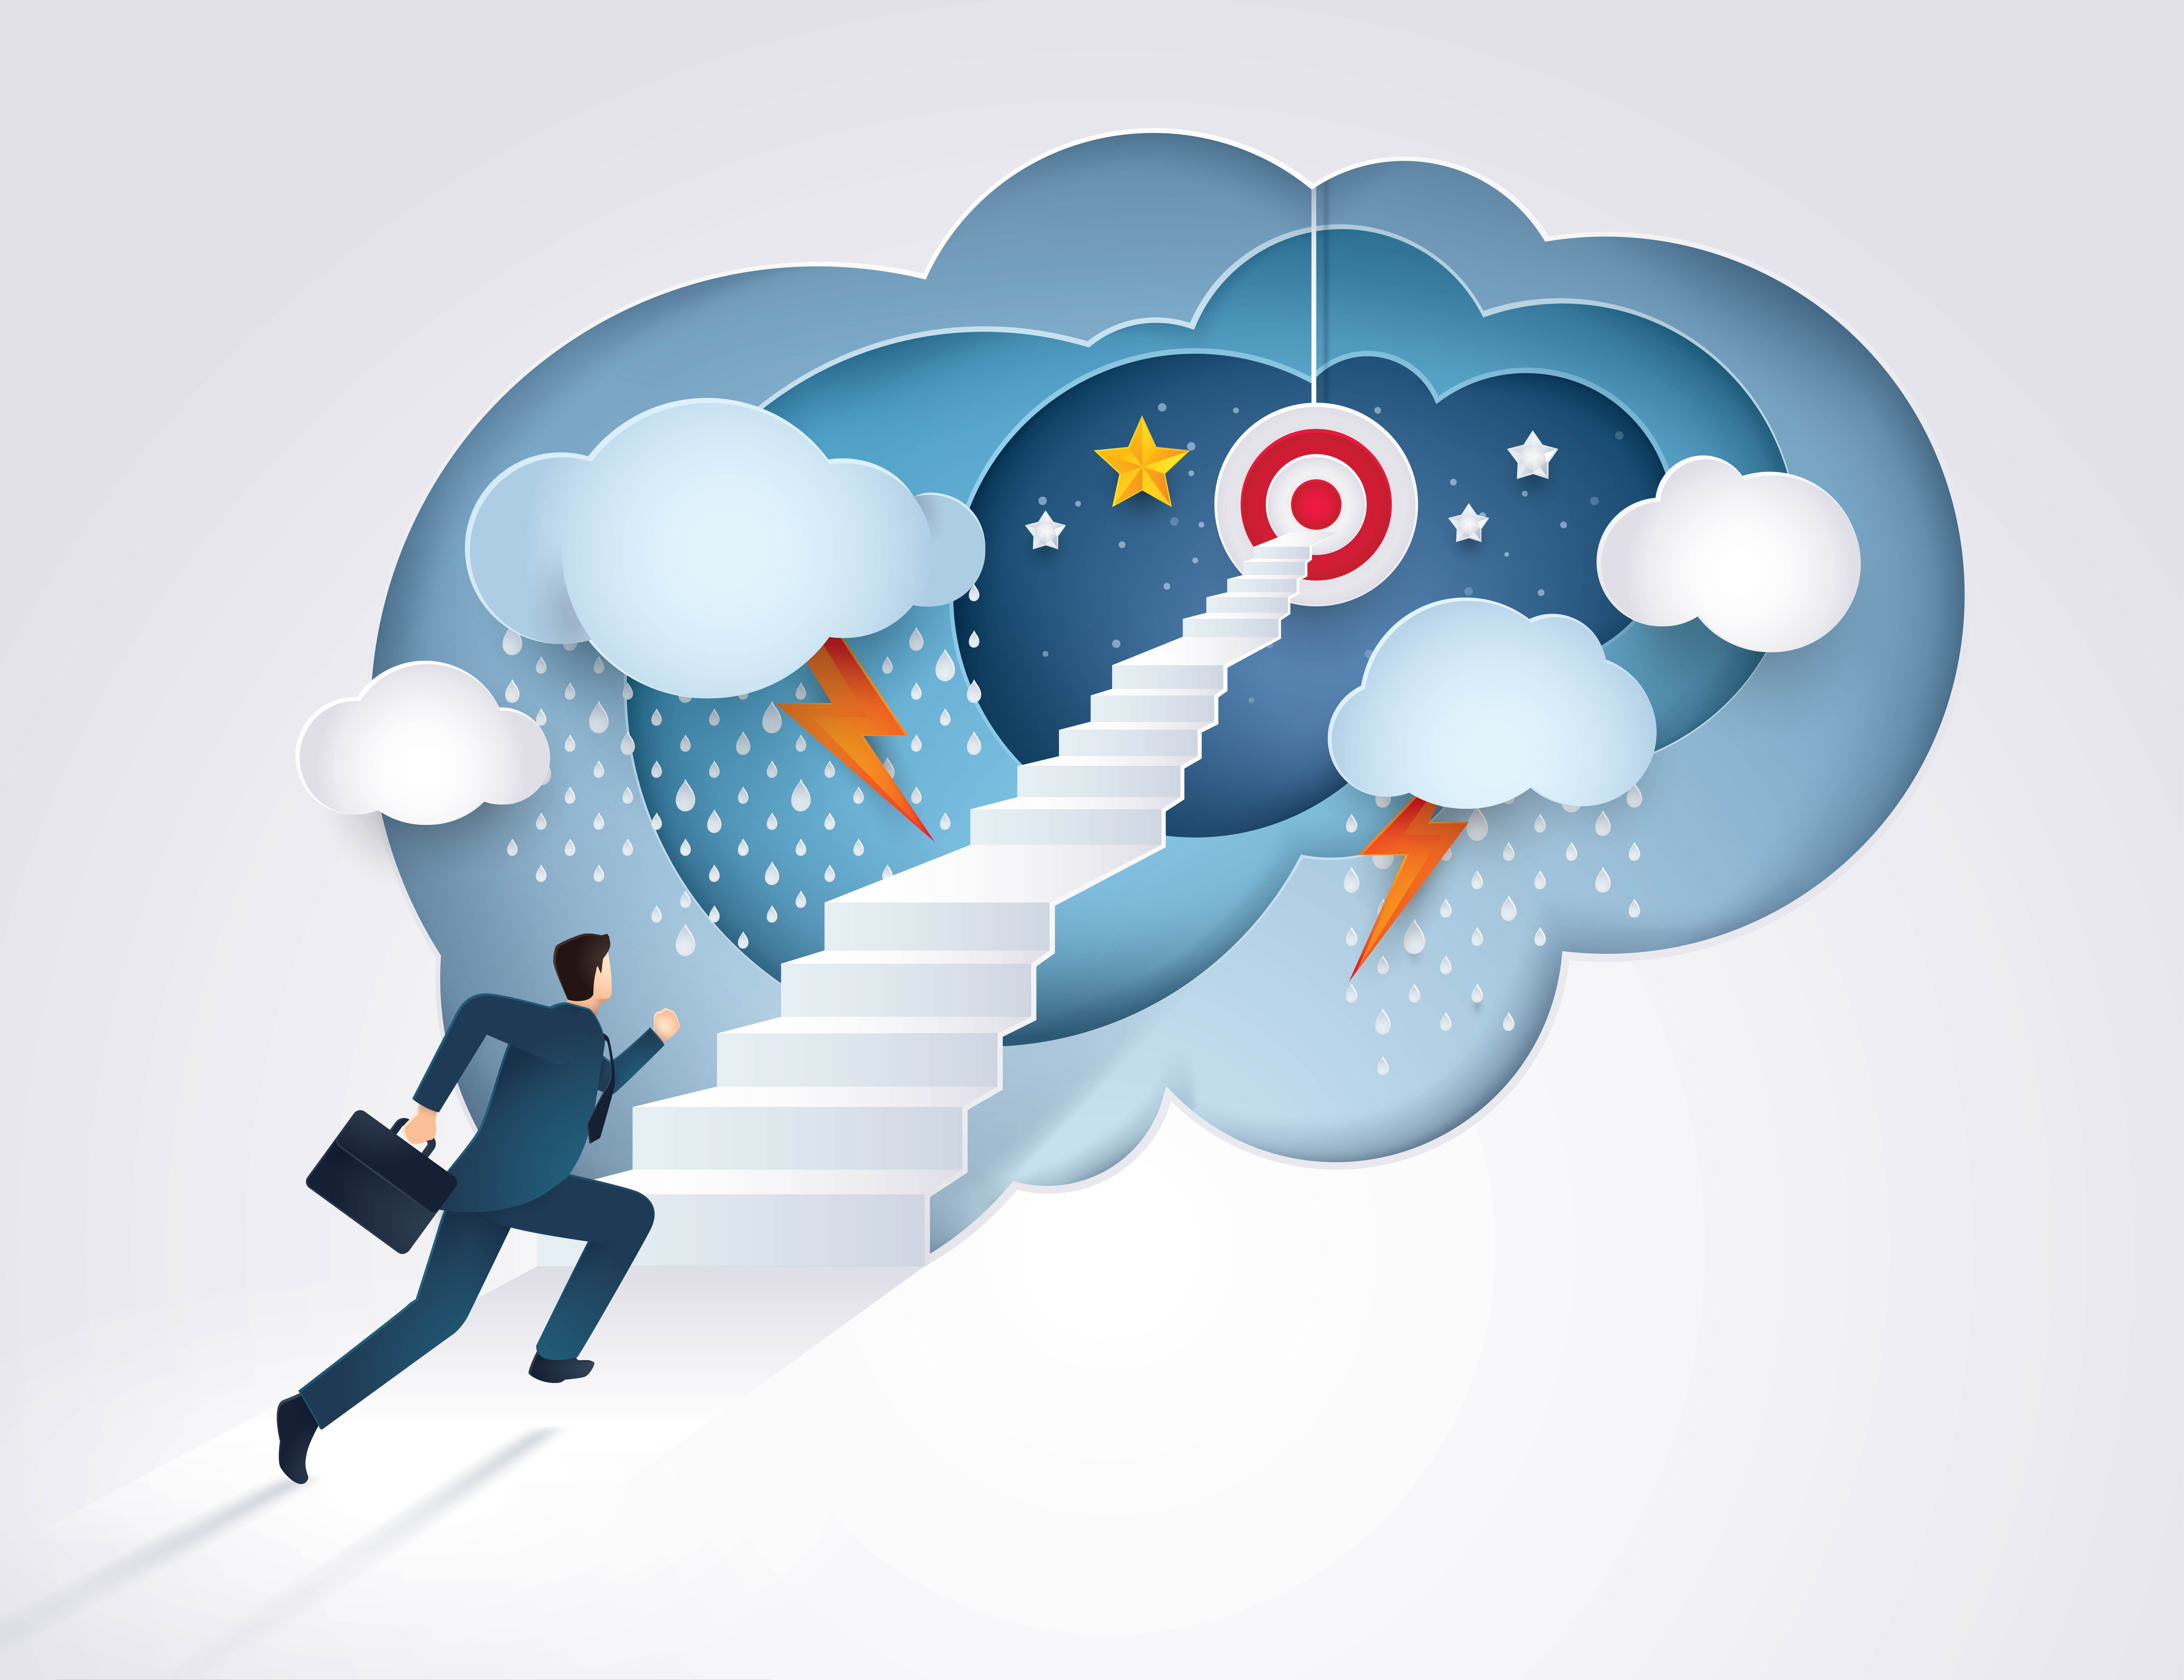 a path to professionalizing III: treat yourself like a pro. The image shows a man in a business suit climbing a staircase to reach a target in the sky.